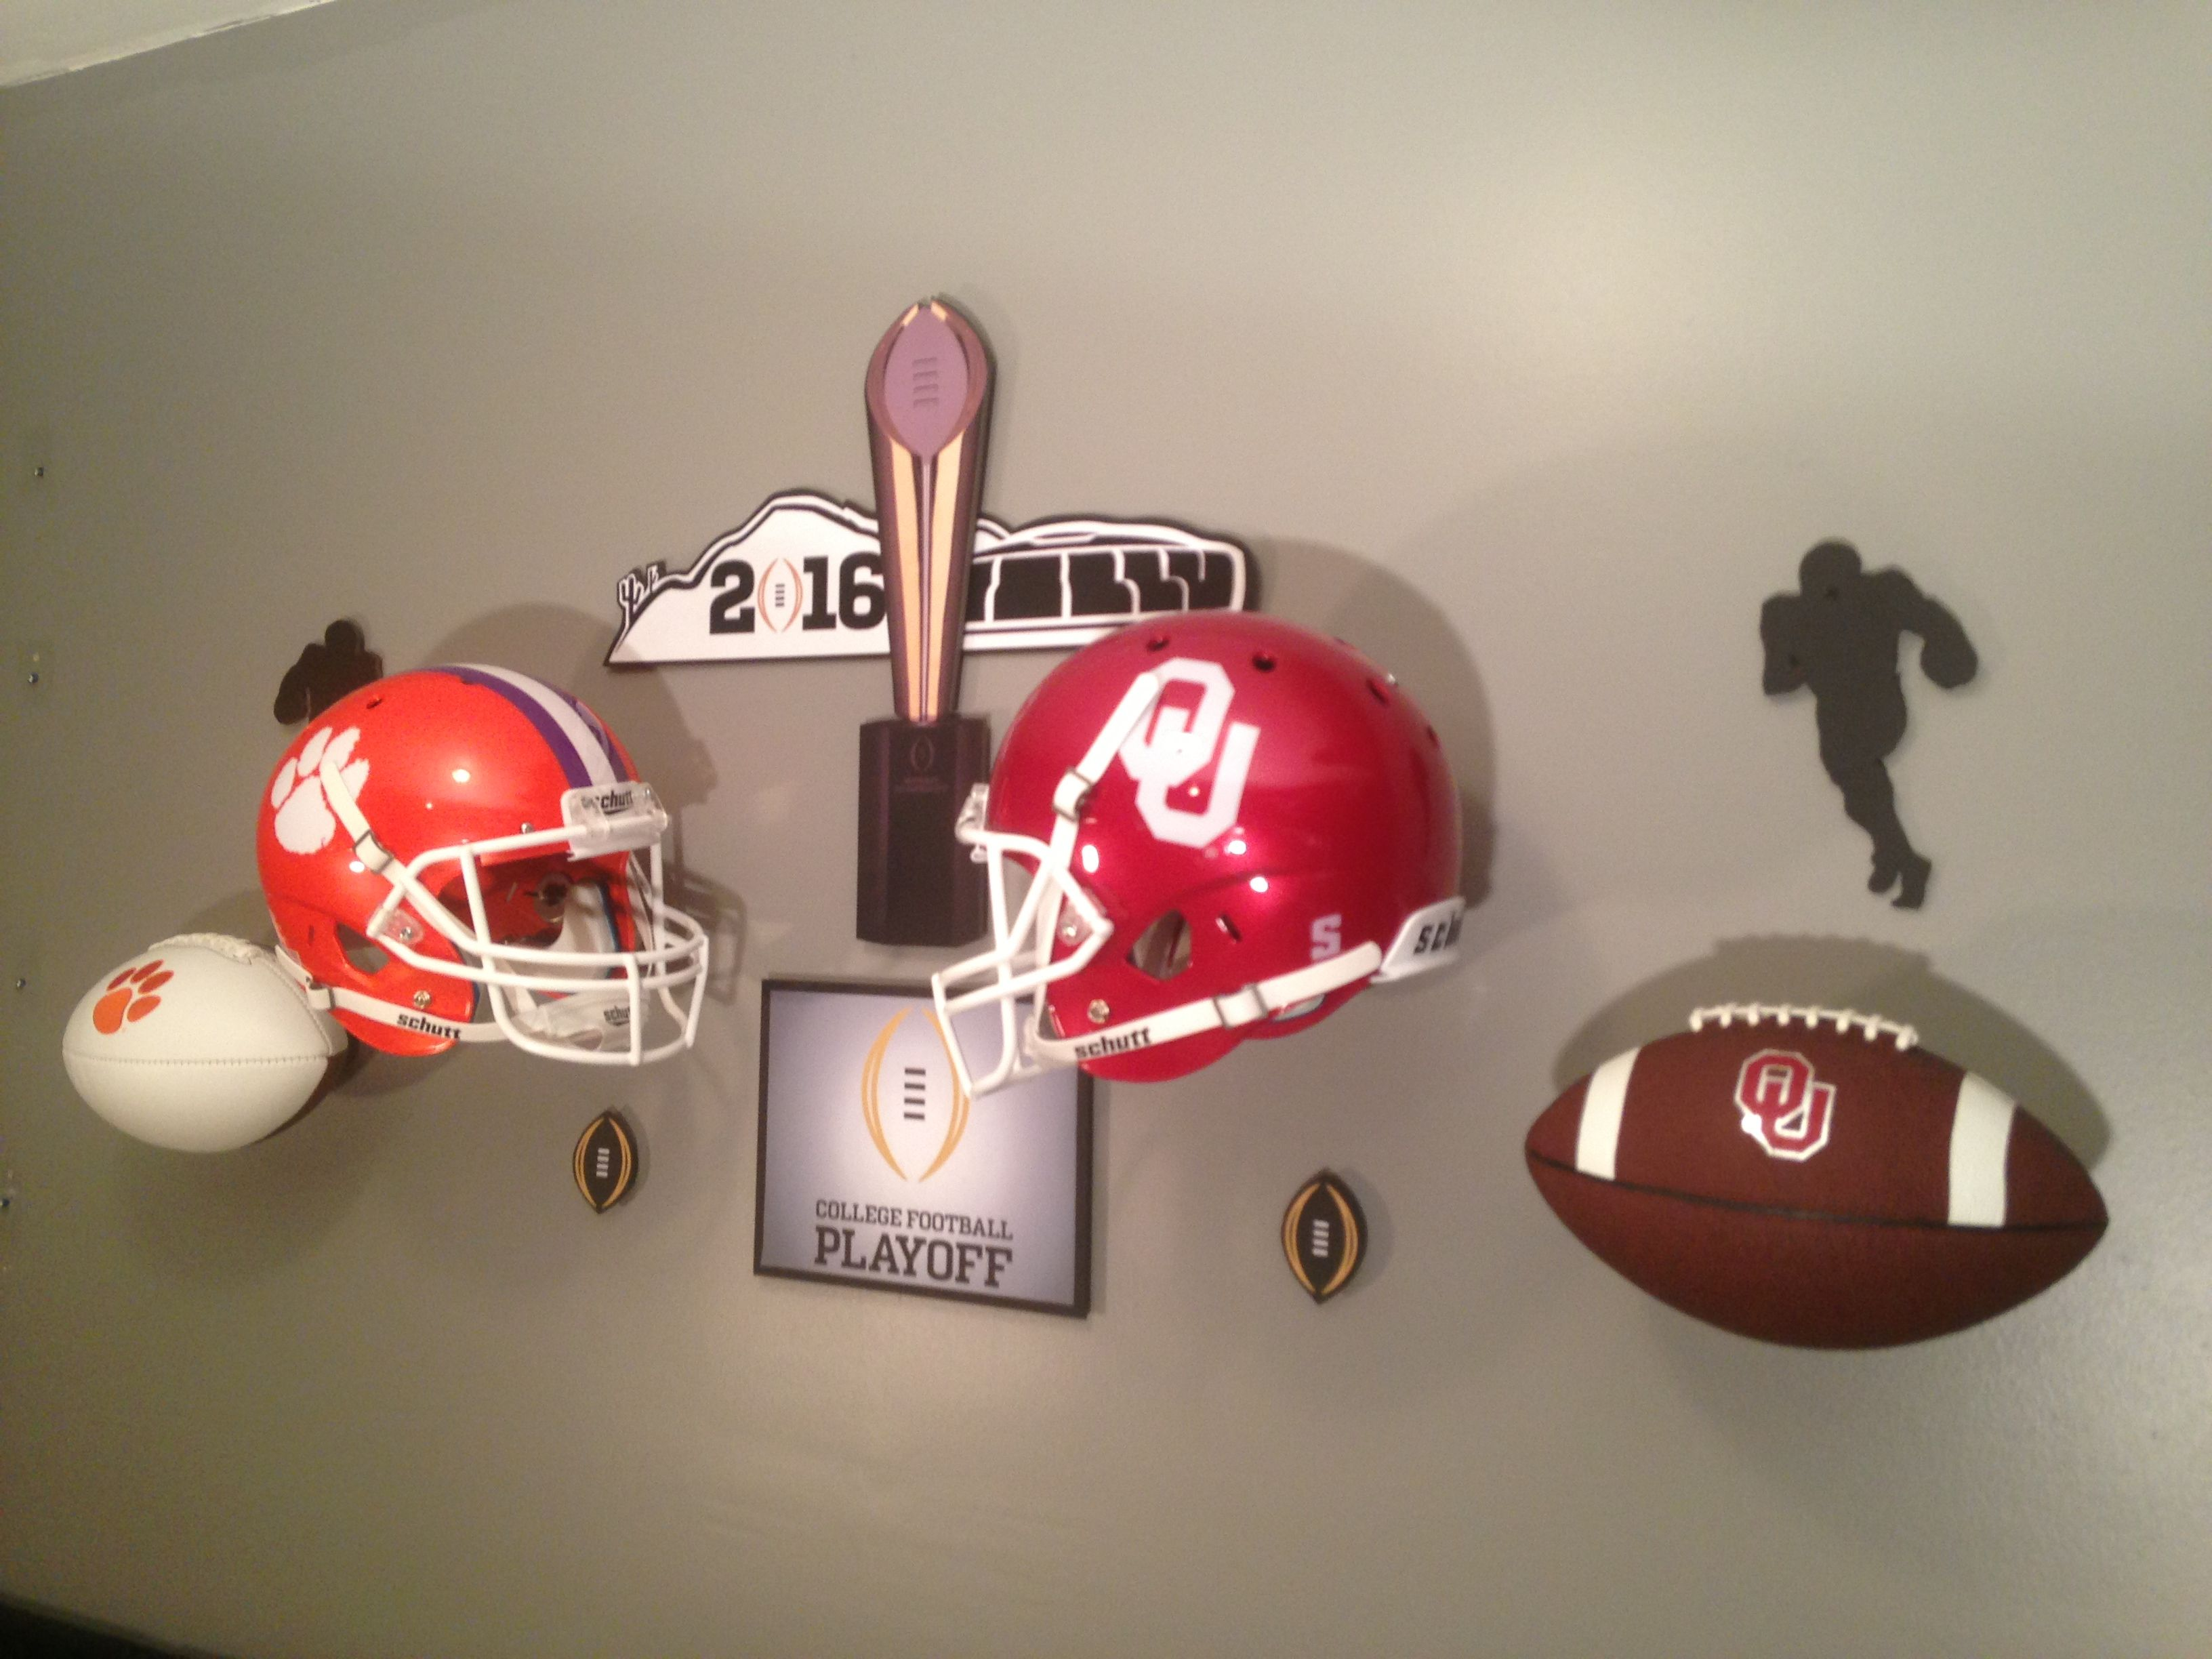 Man Cave Norman Ok : Boomer sooner? who ya' got? the invisi ball wall mount makes all of